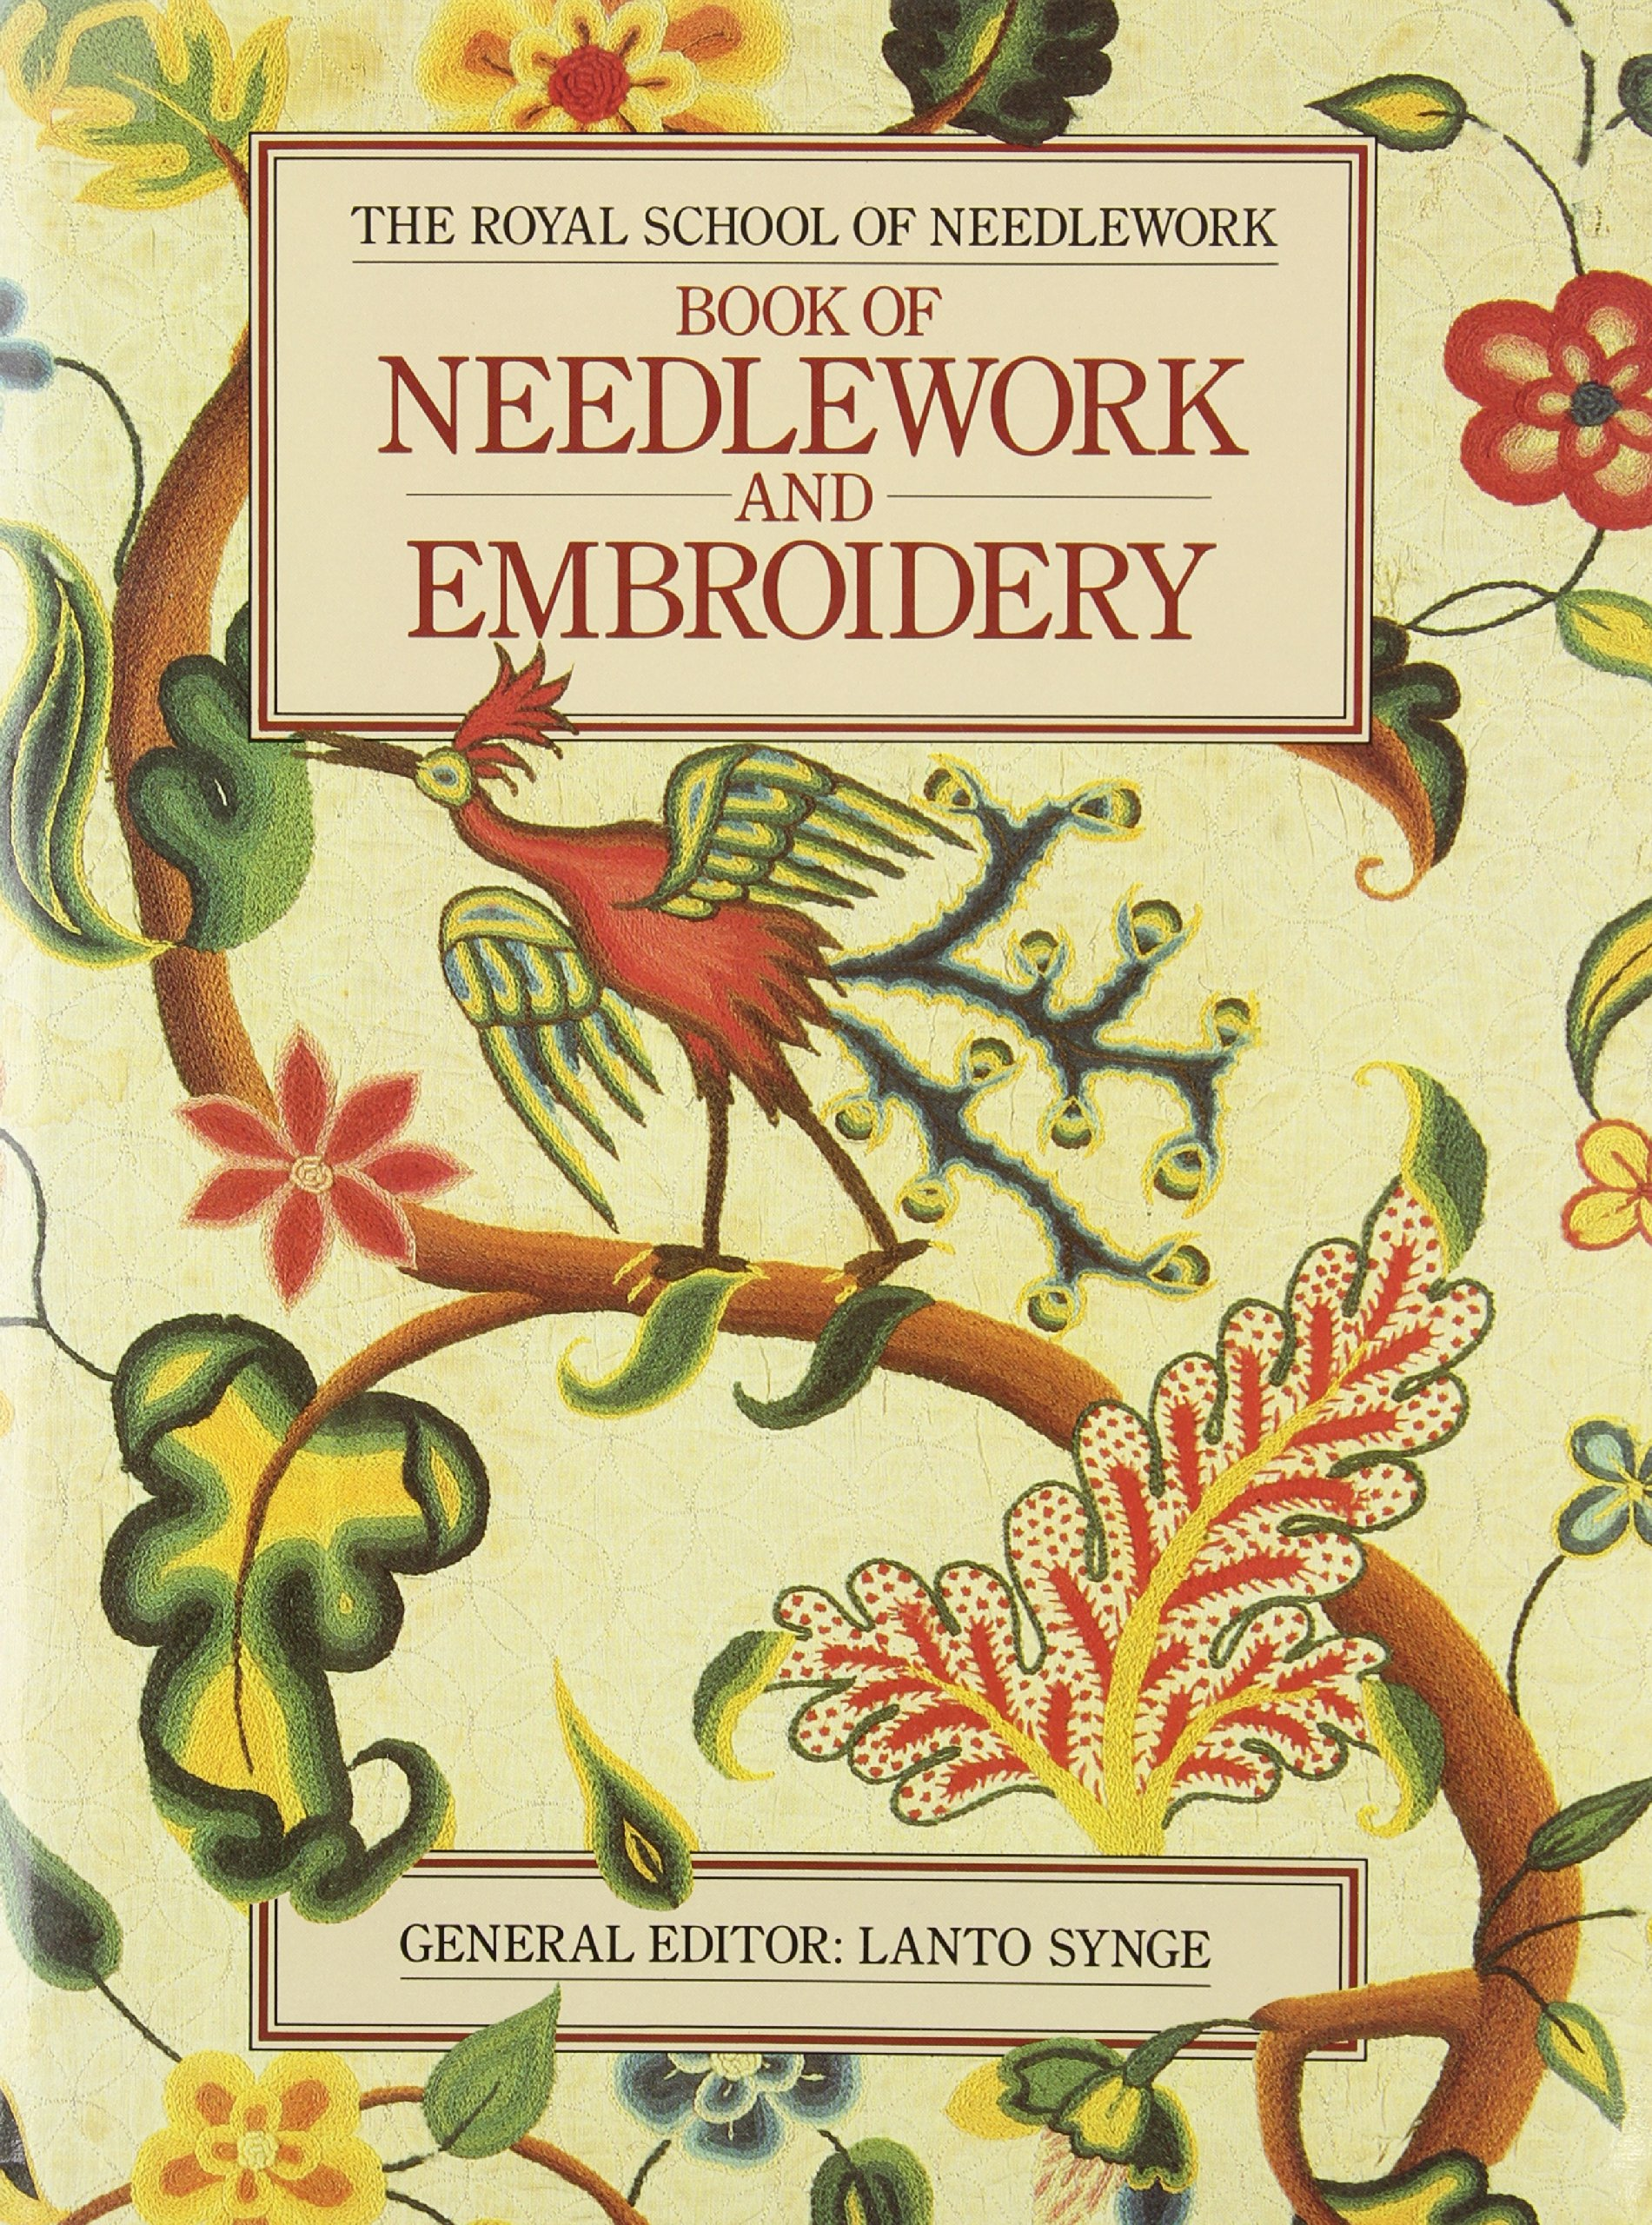 The Royal School of Needlework - Book Of Needlework and Embroidery